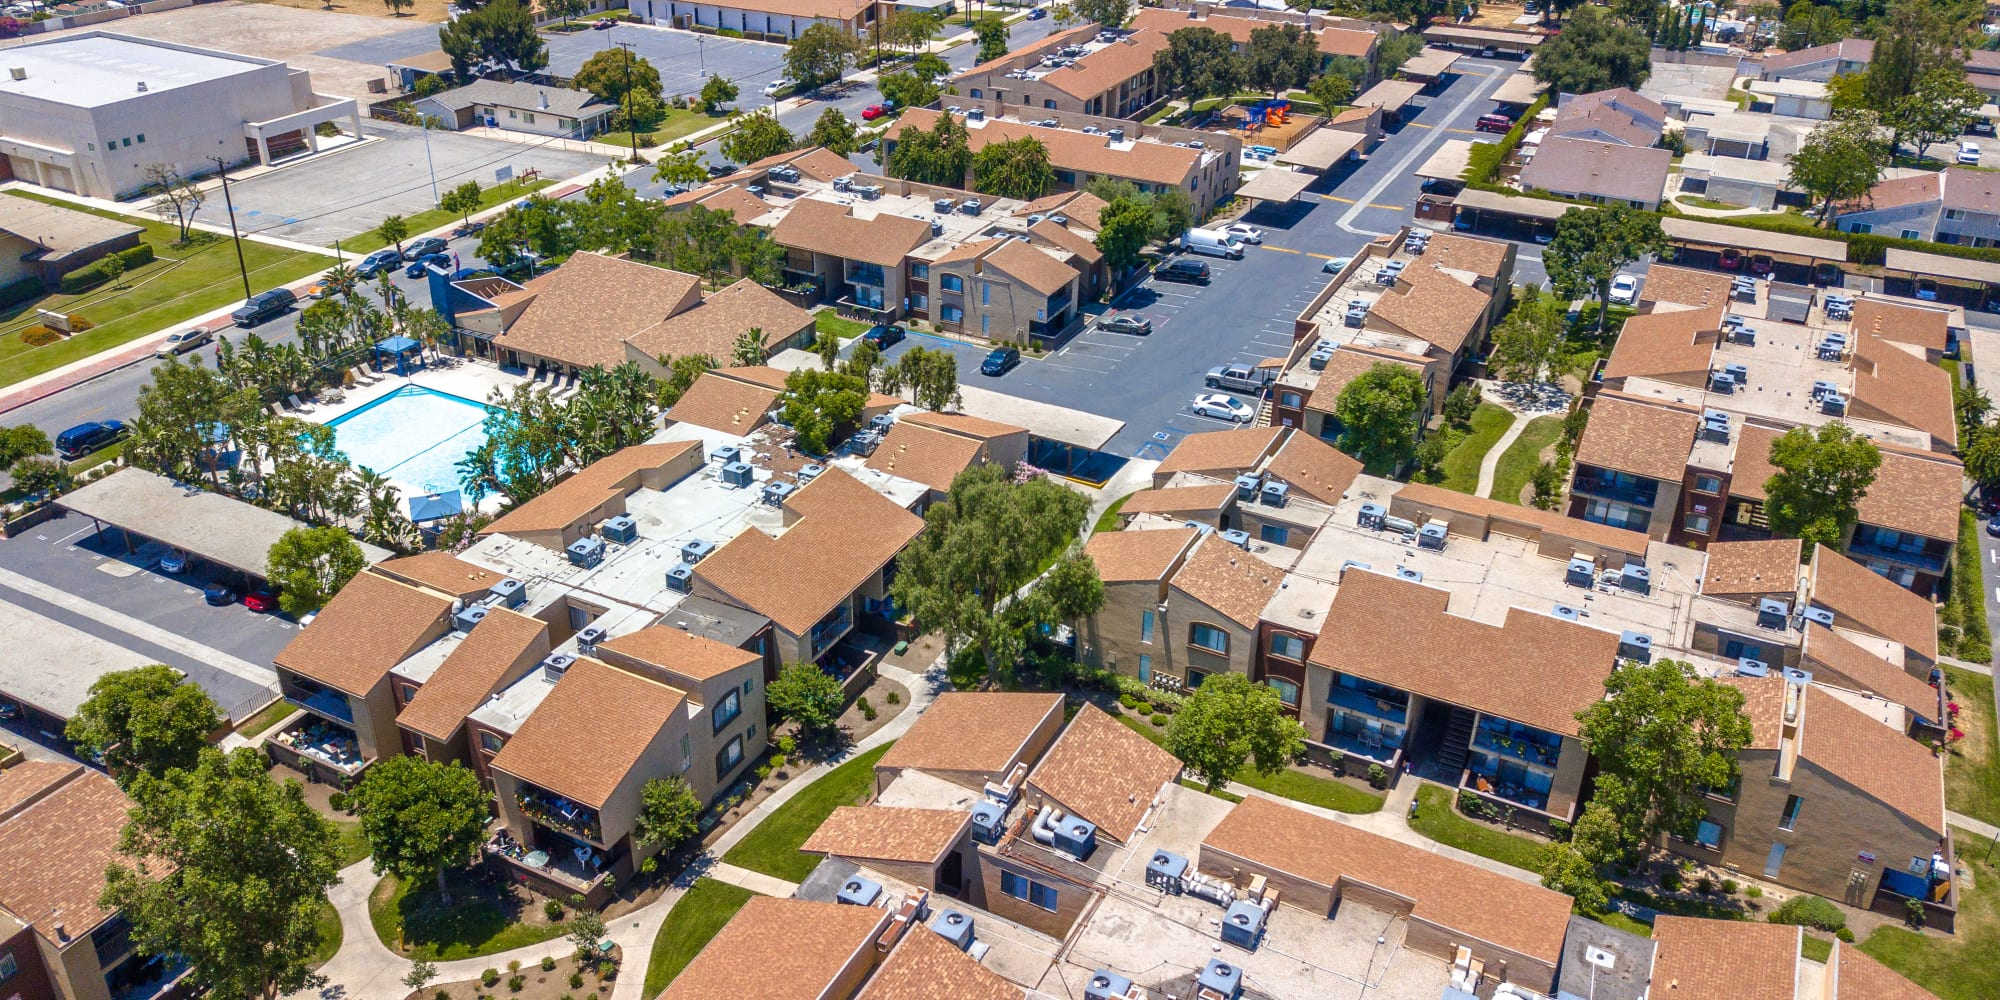 Aerial view of the apartment style homes at West Fifth Apartments in Ontario, California